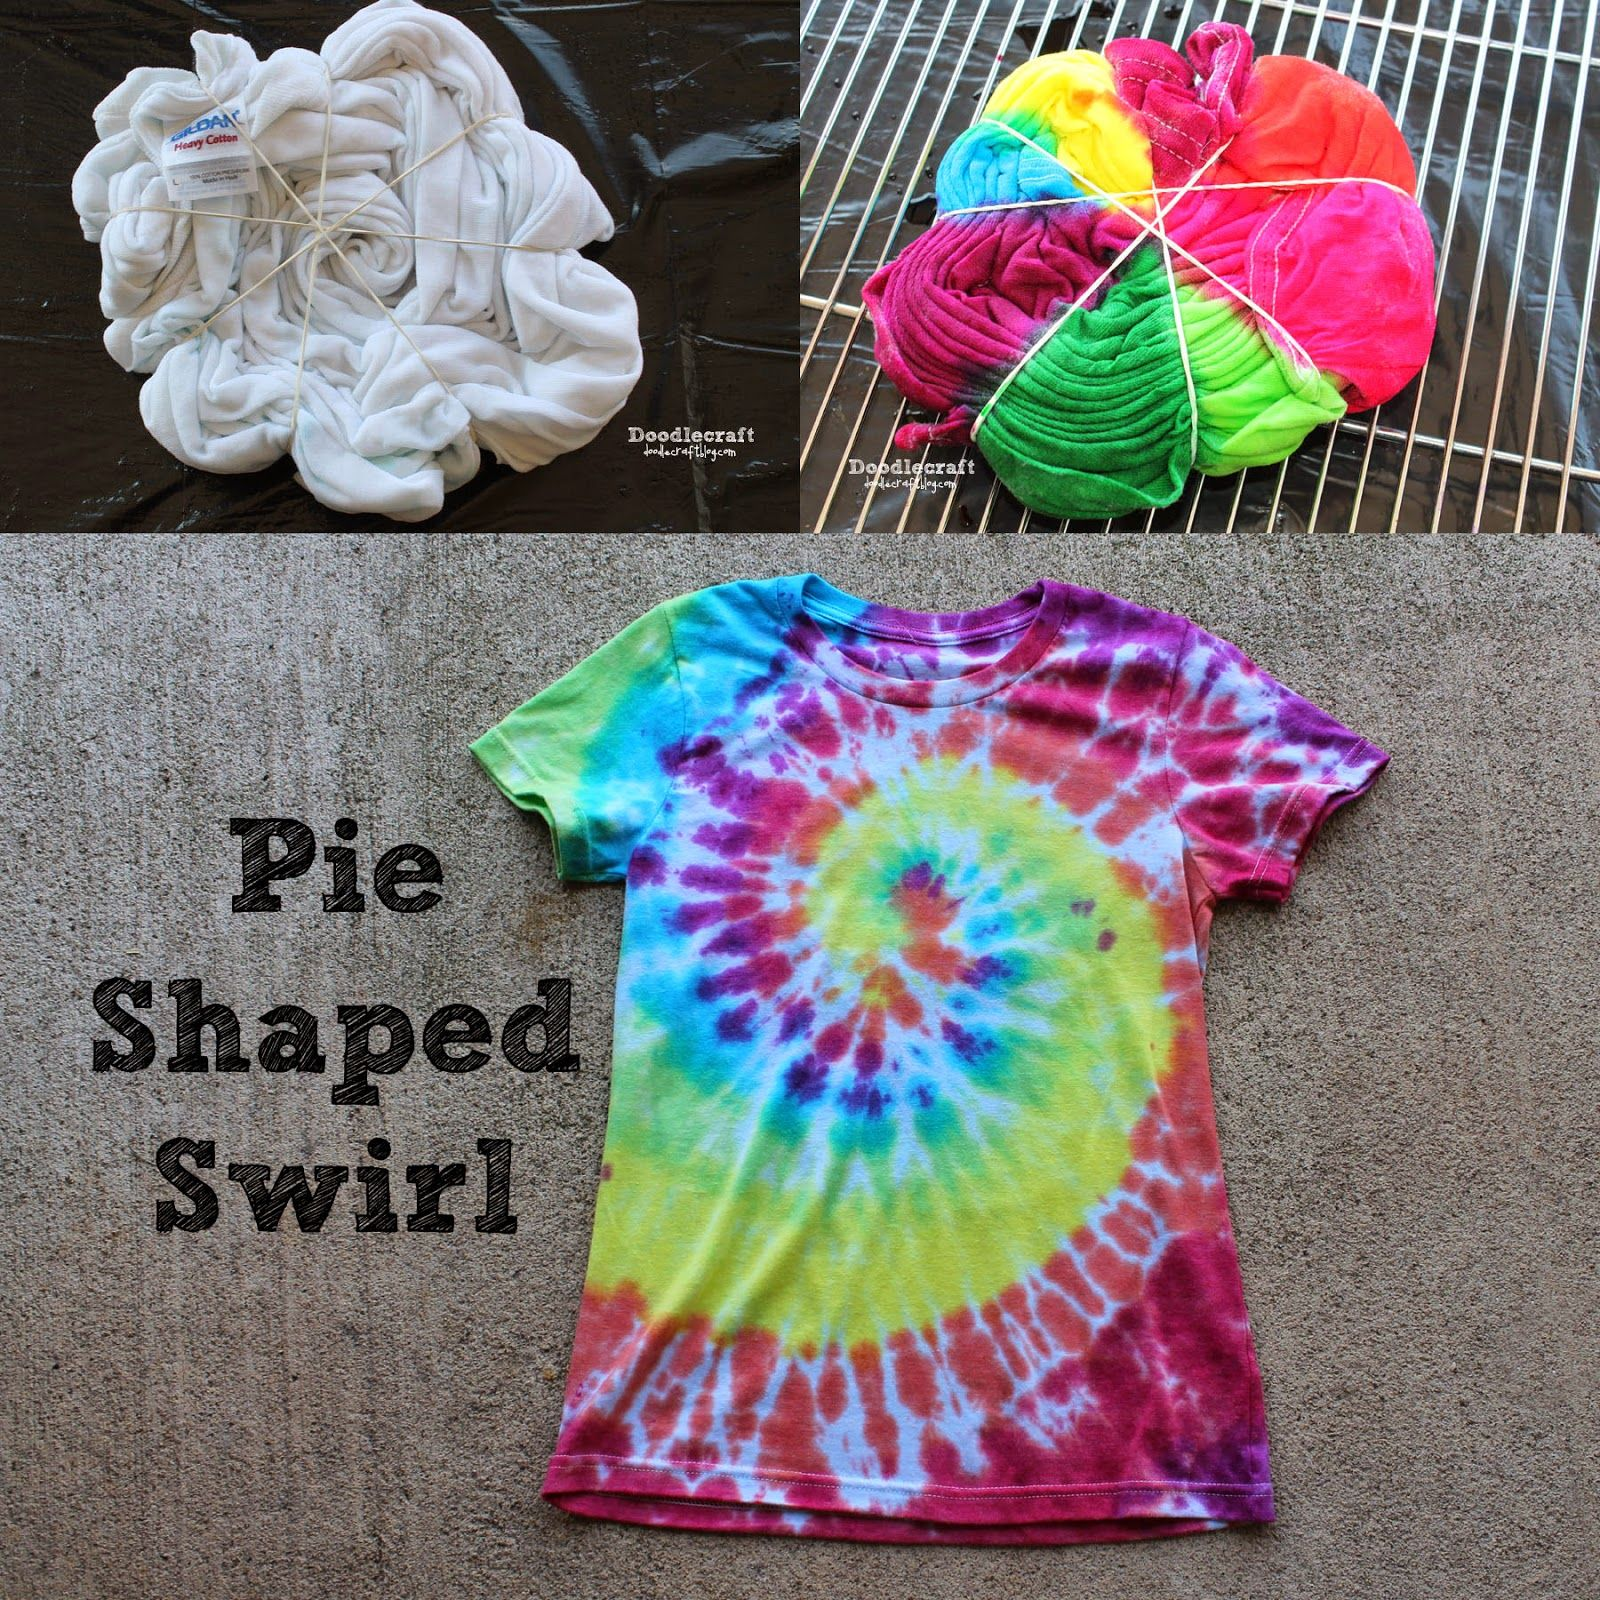 Tulip tie dye t shirt party swirl pattern pies and shapes for Tie dye t shirt patterns